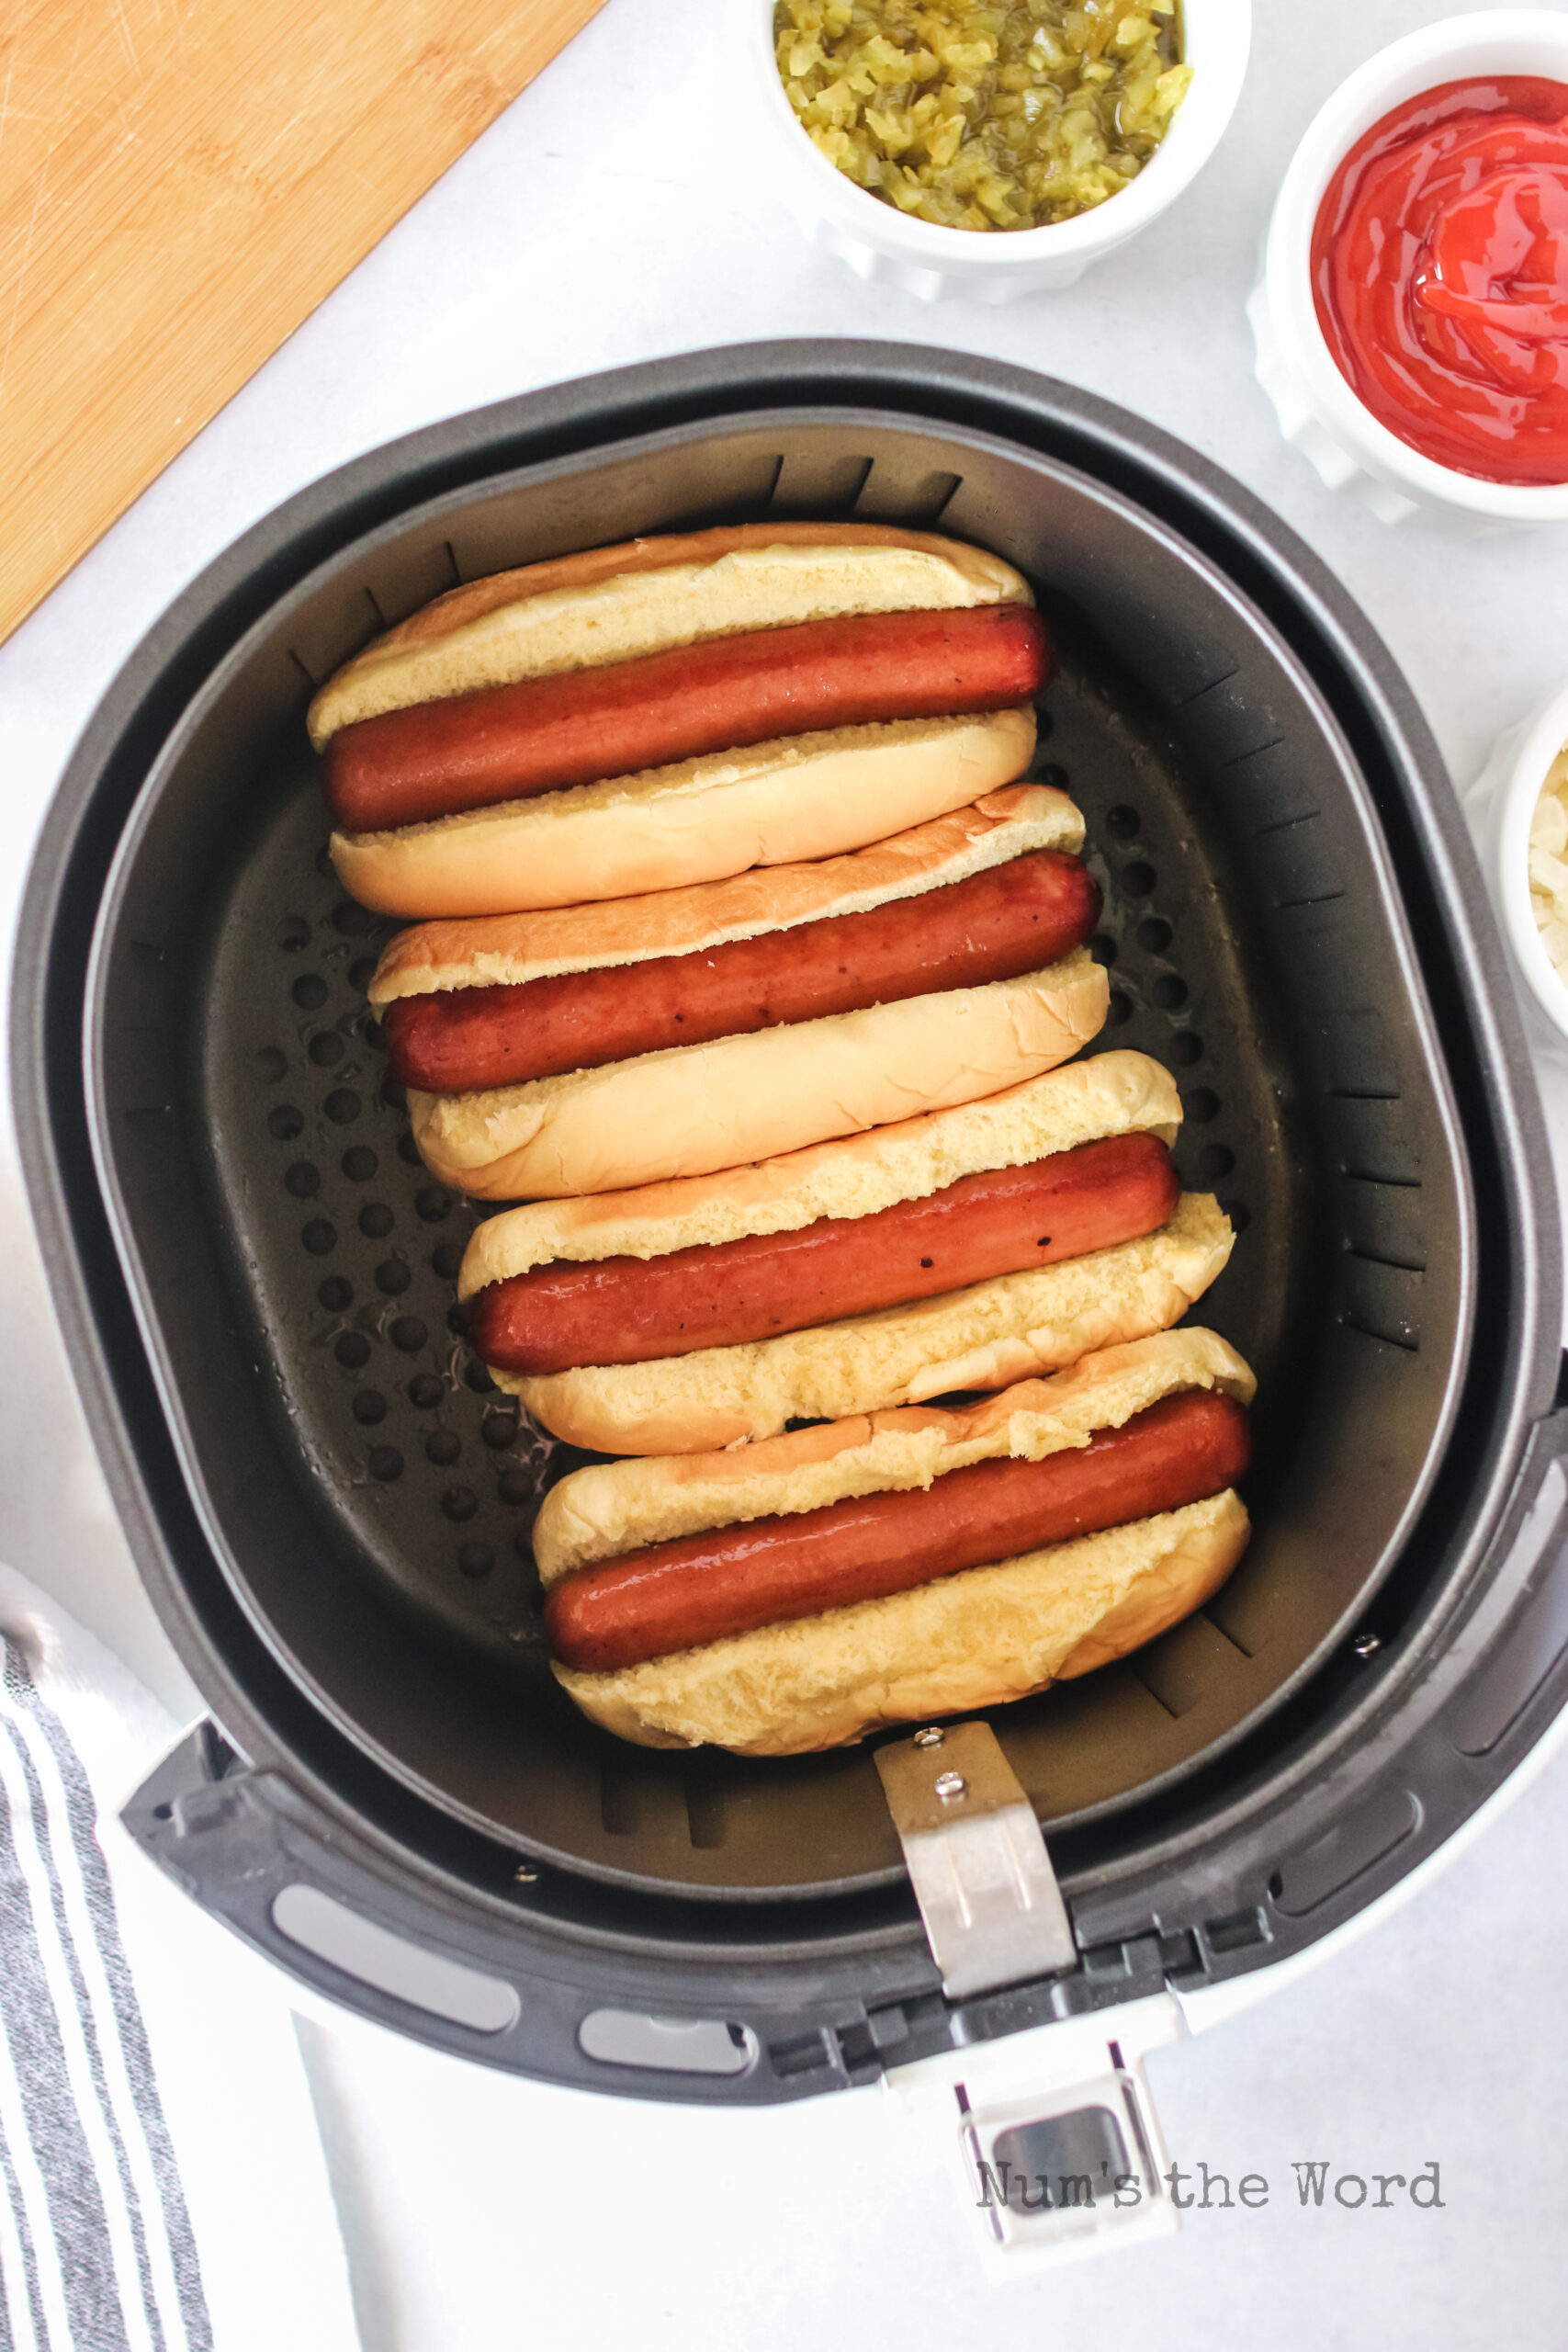 cooked hot dogs with buns in the air fryer, ready to serve.